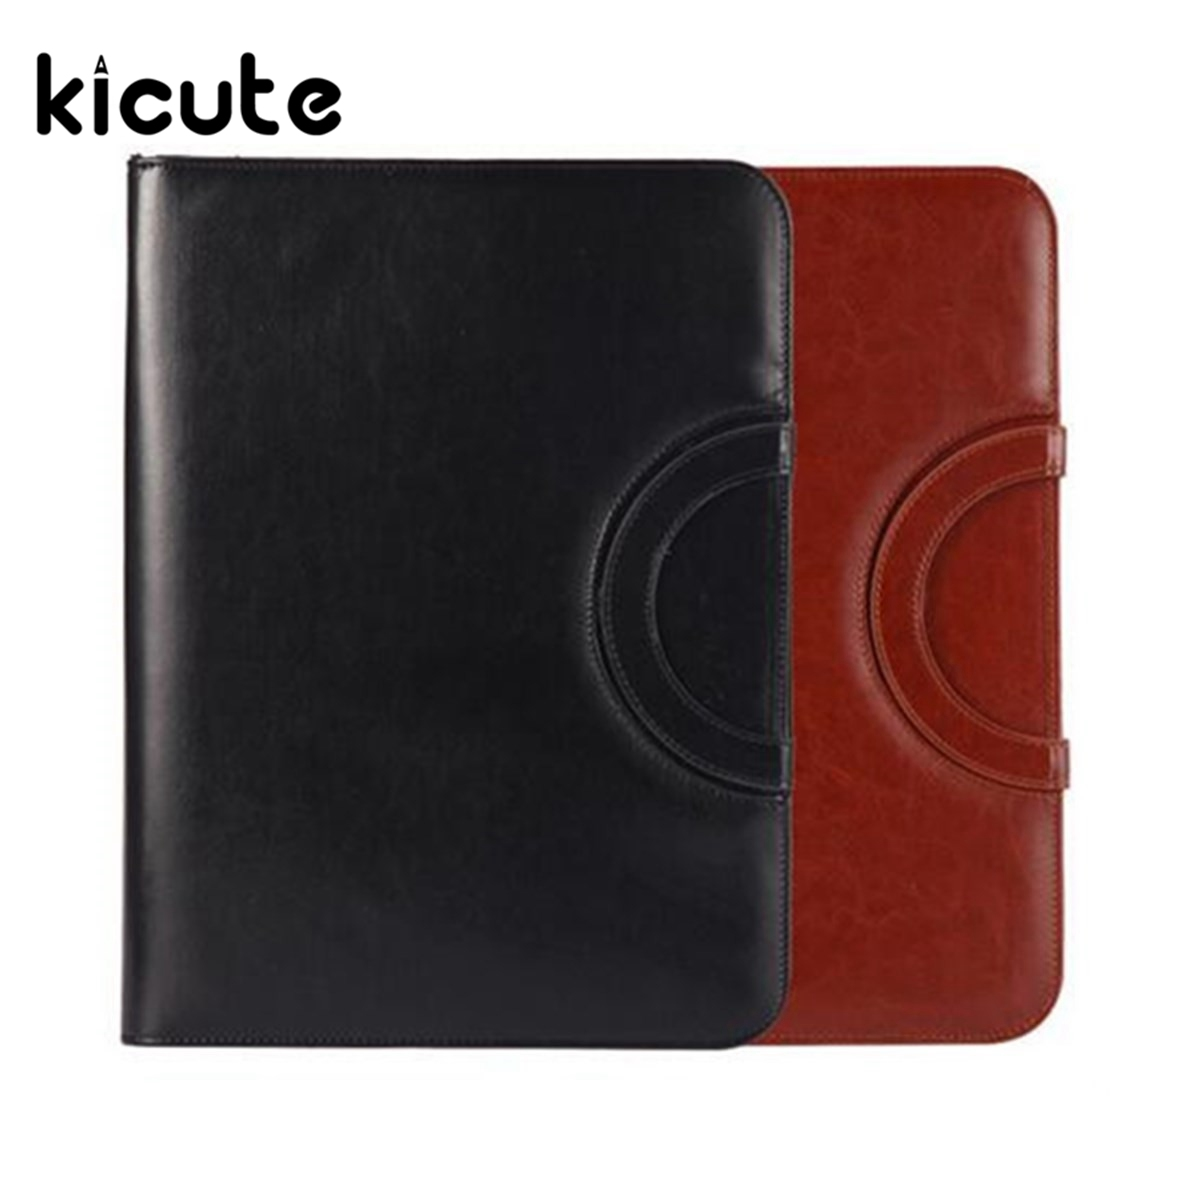 Kicute 1pc Black/Brown A4 PU Leather Zipped Ring Binder Conference Folder Document Bag Business Briefcase Office School Supplies kicute a4 conference folder zipped leather portfolio organiser with calculator document bag manager file folder bussiness supply